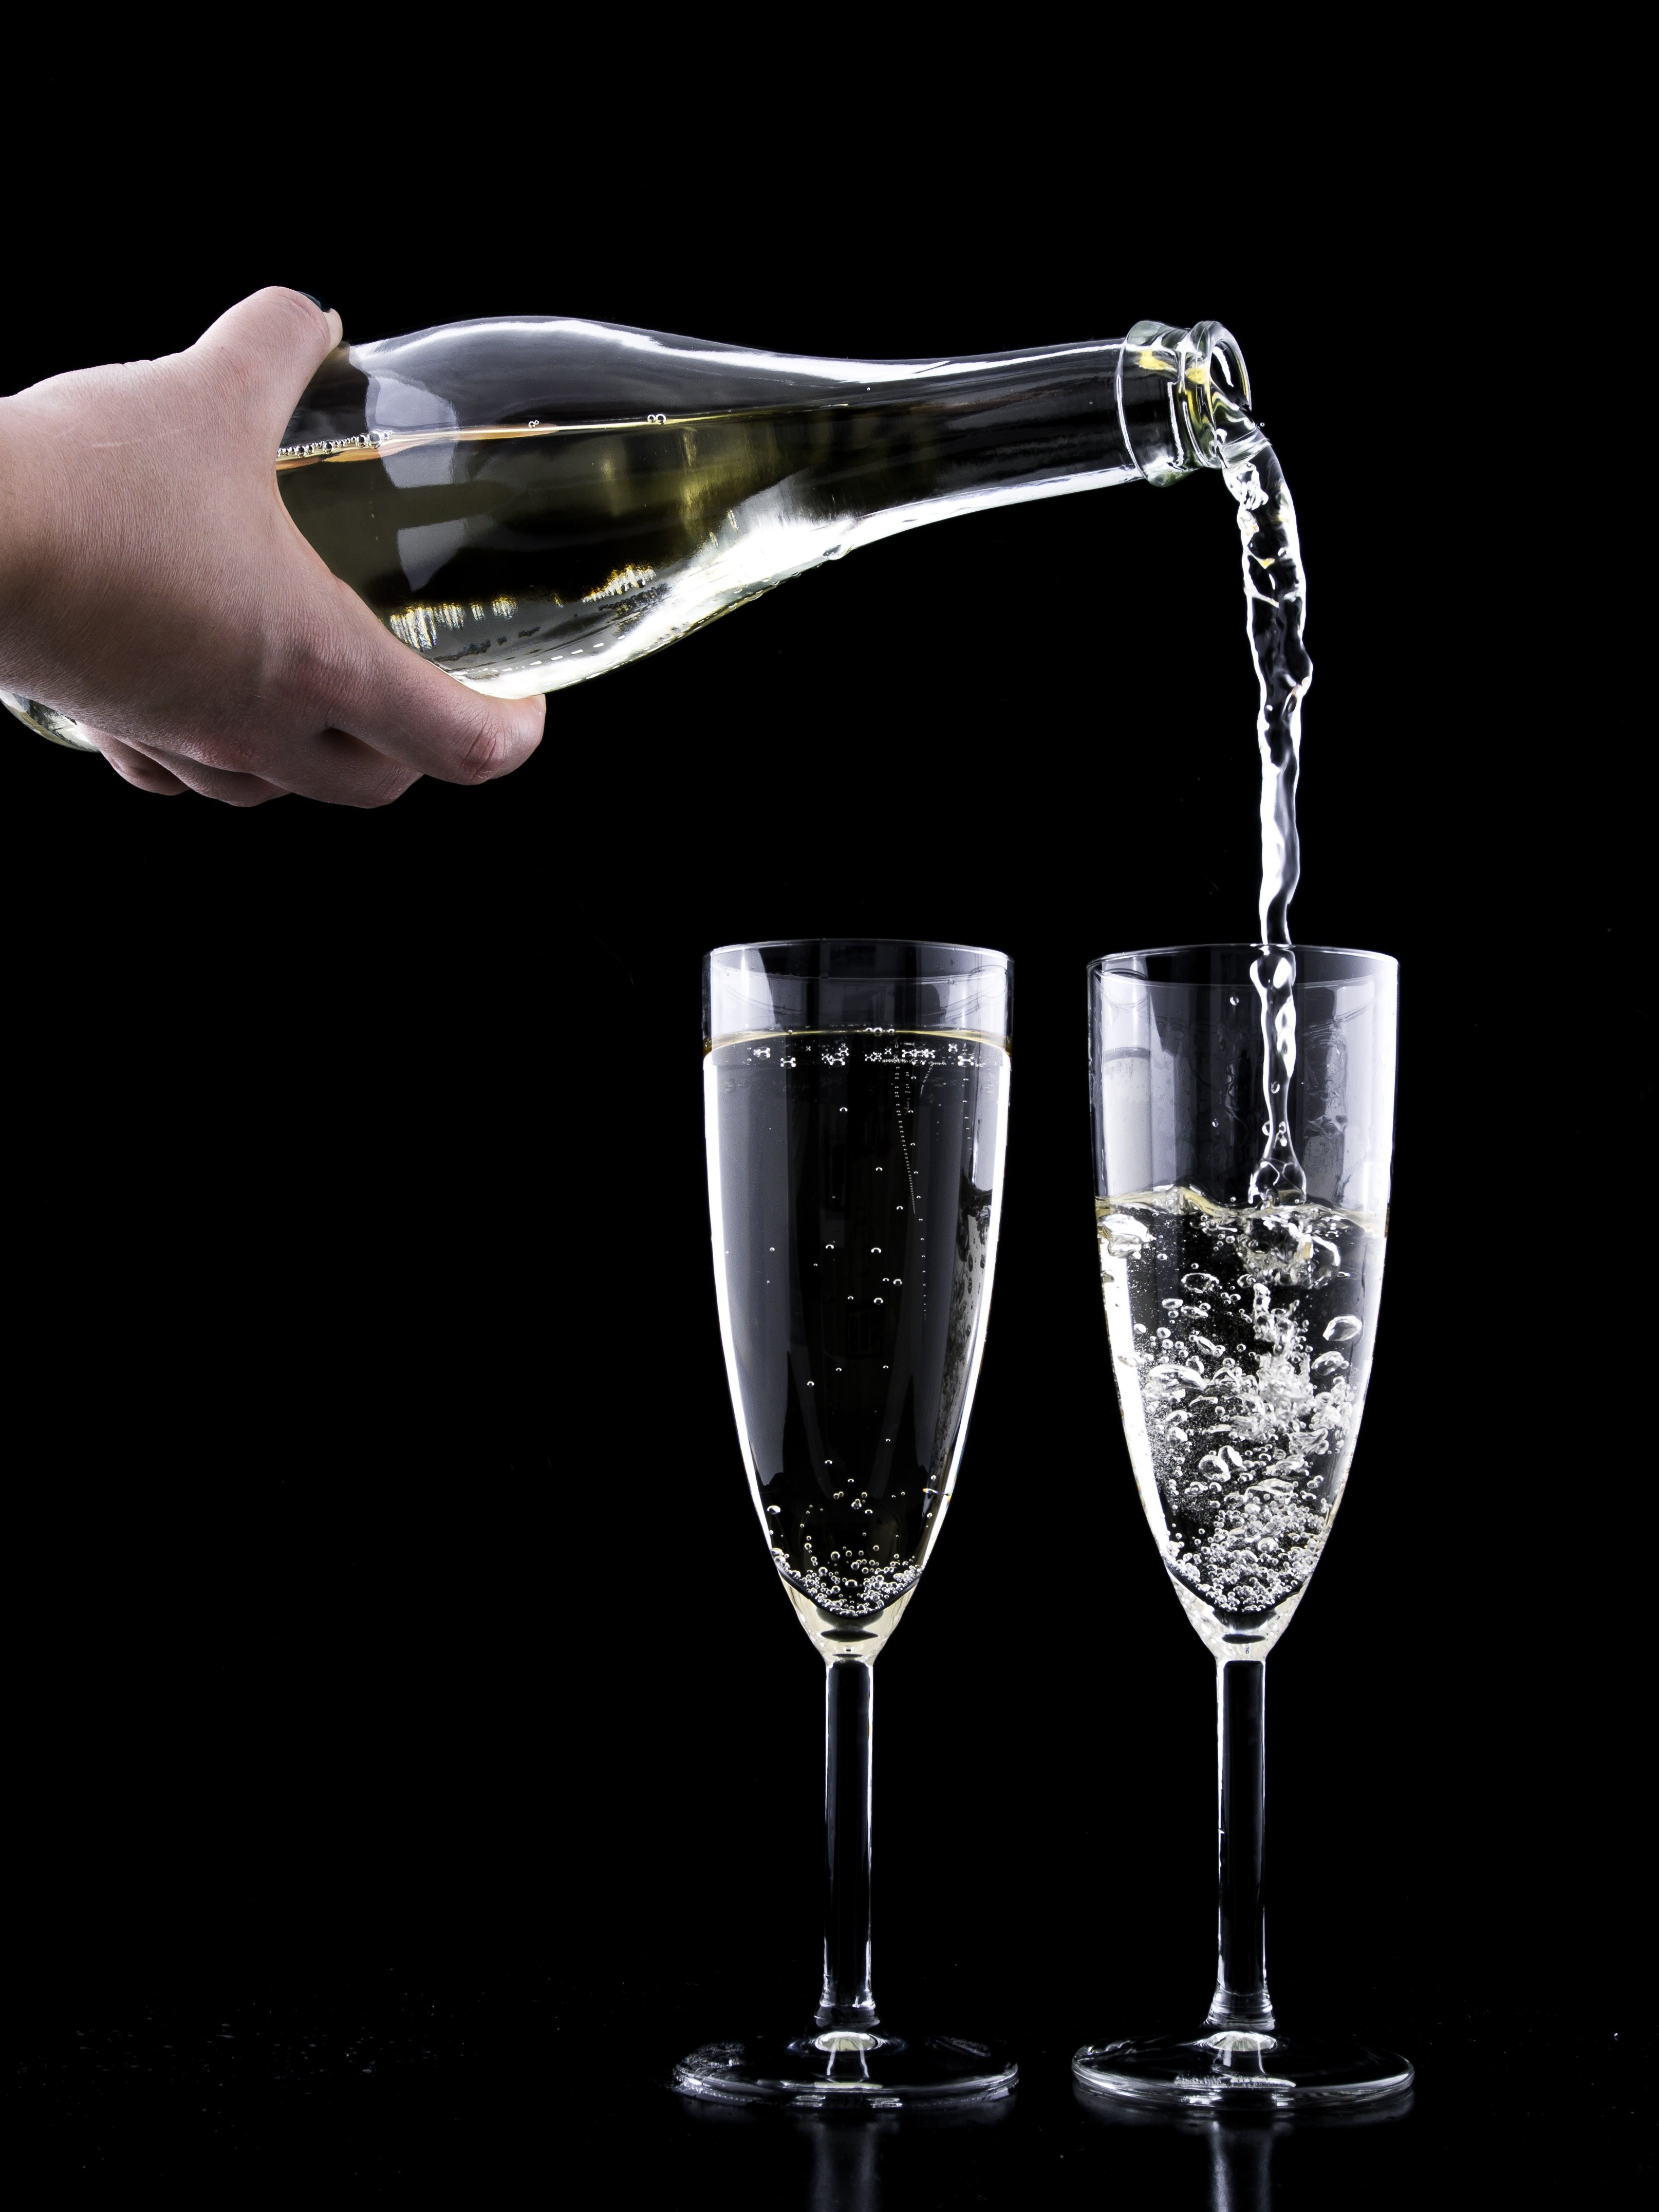 Advantages of using plastic champagne glass